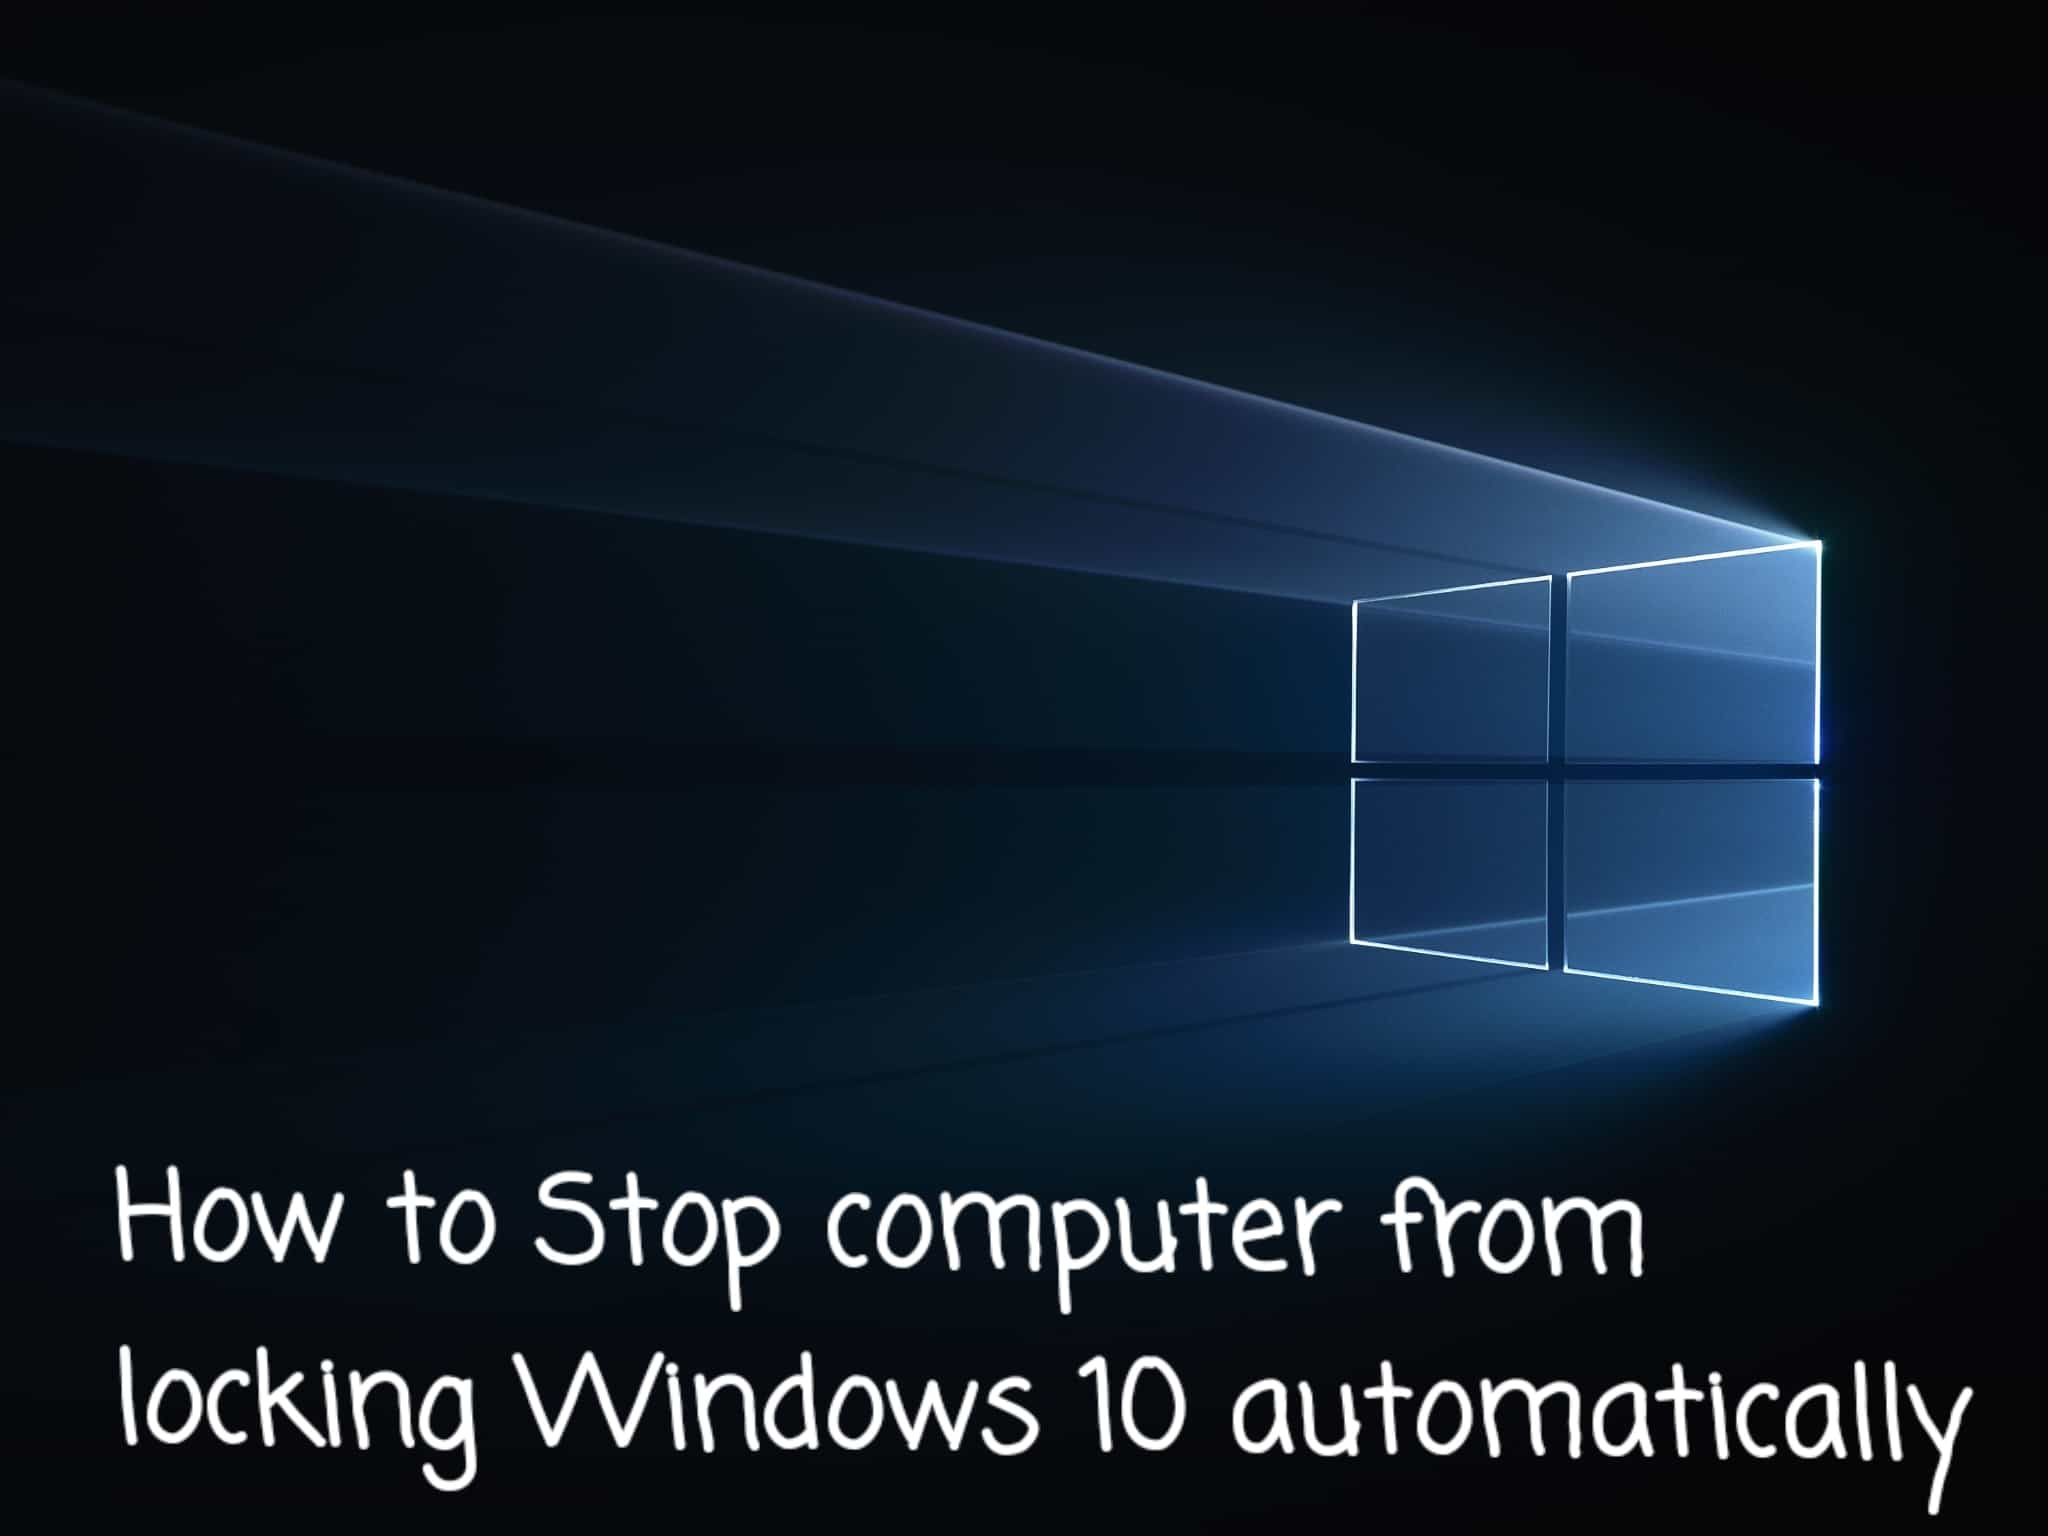 How to Stop computer from locking Windows 10 automatically